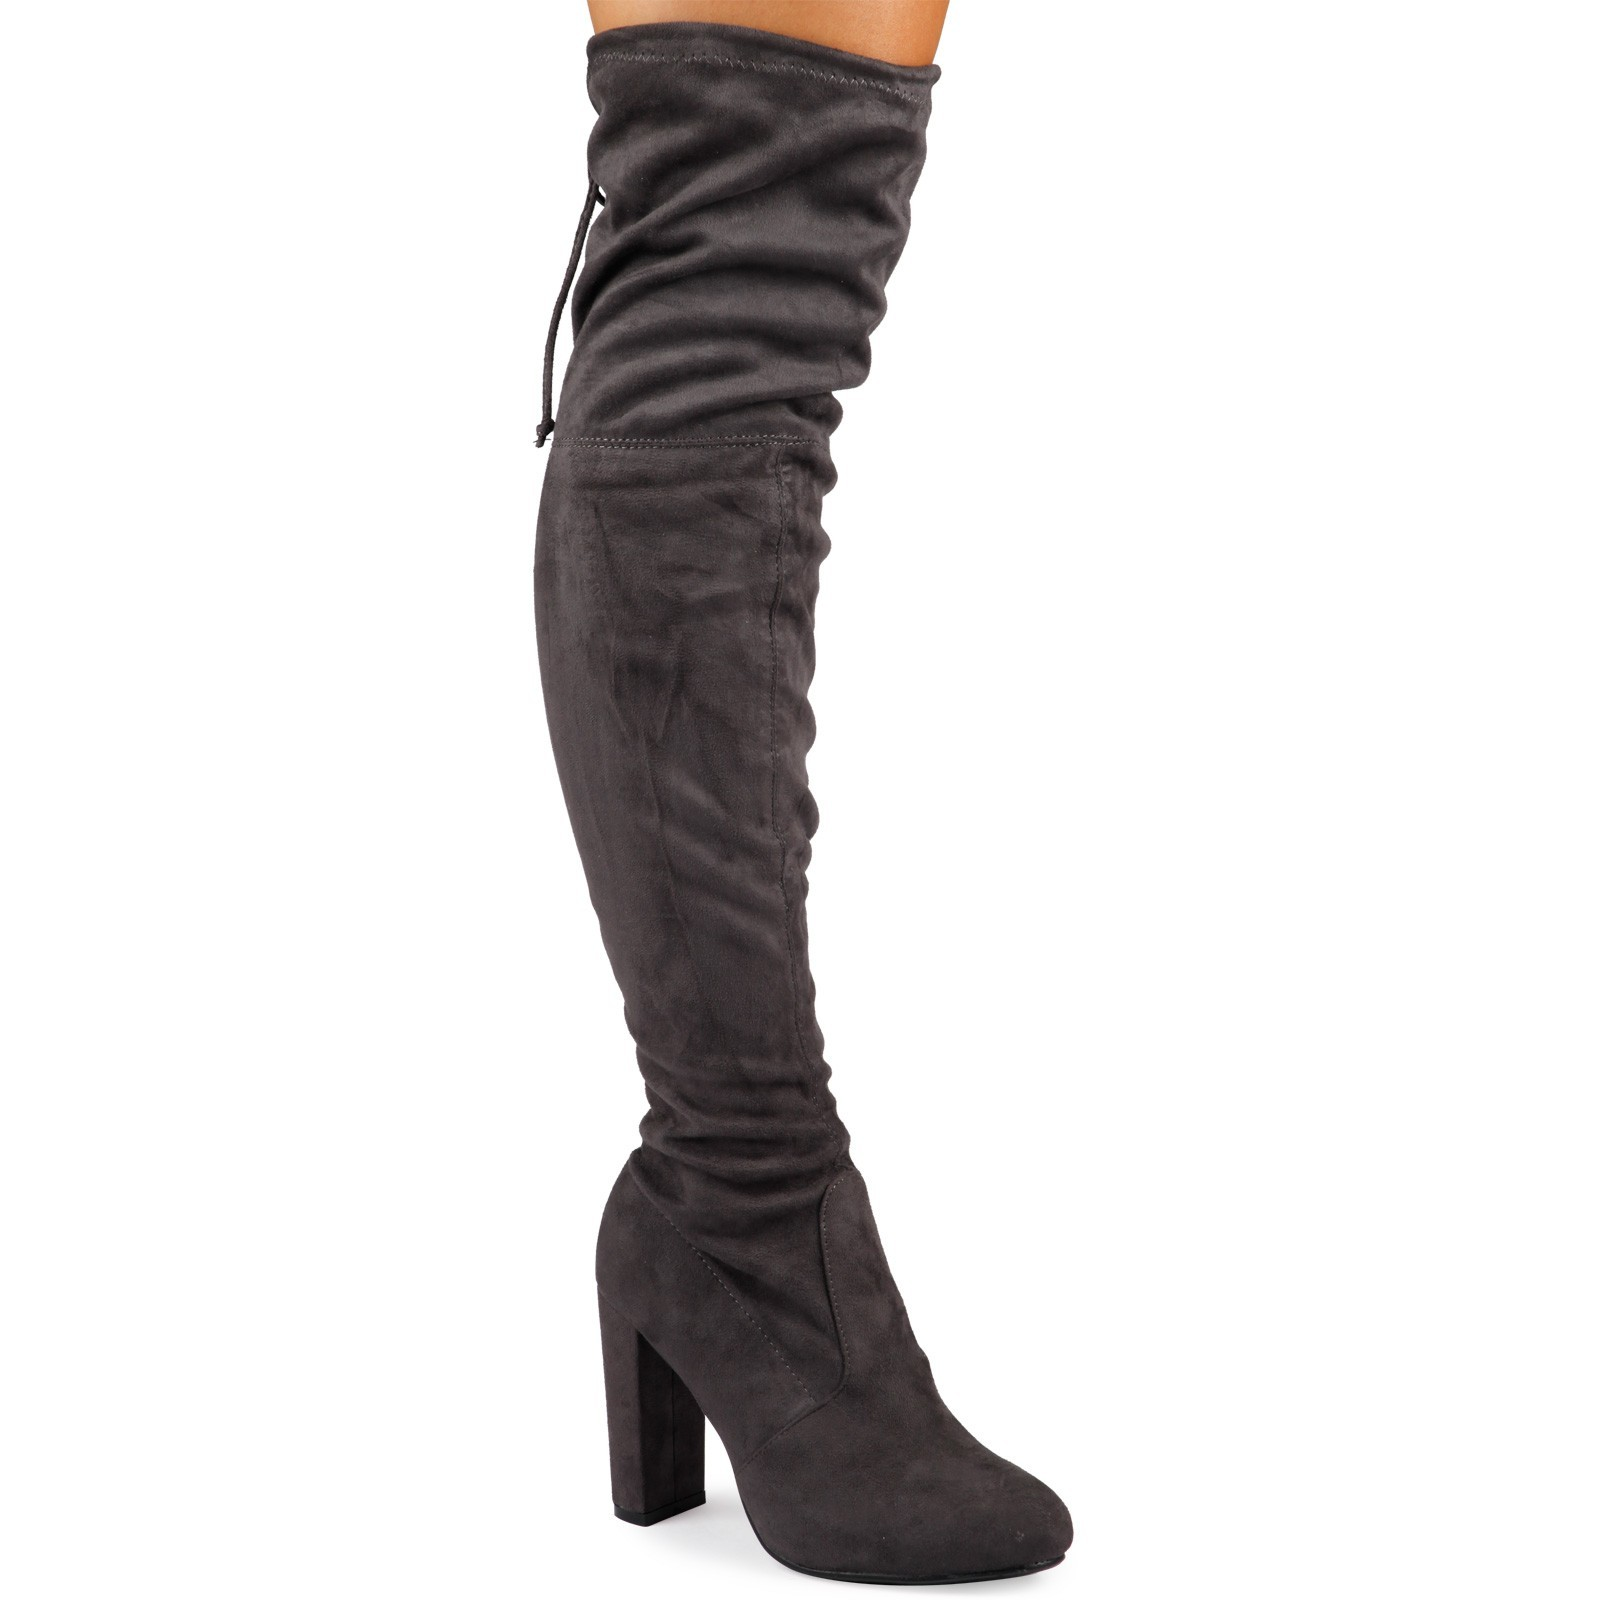 ivy grey boot re-stocked at ego